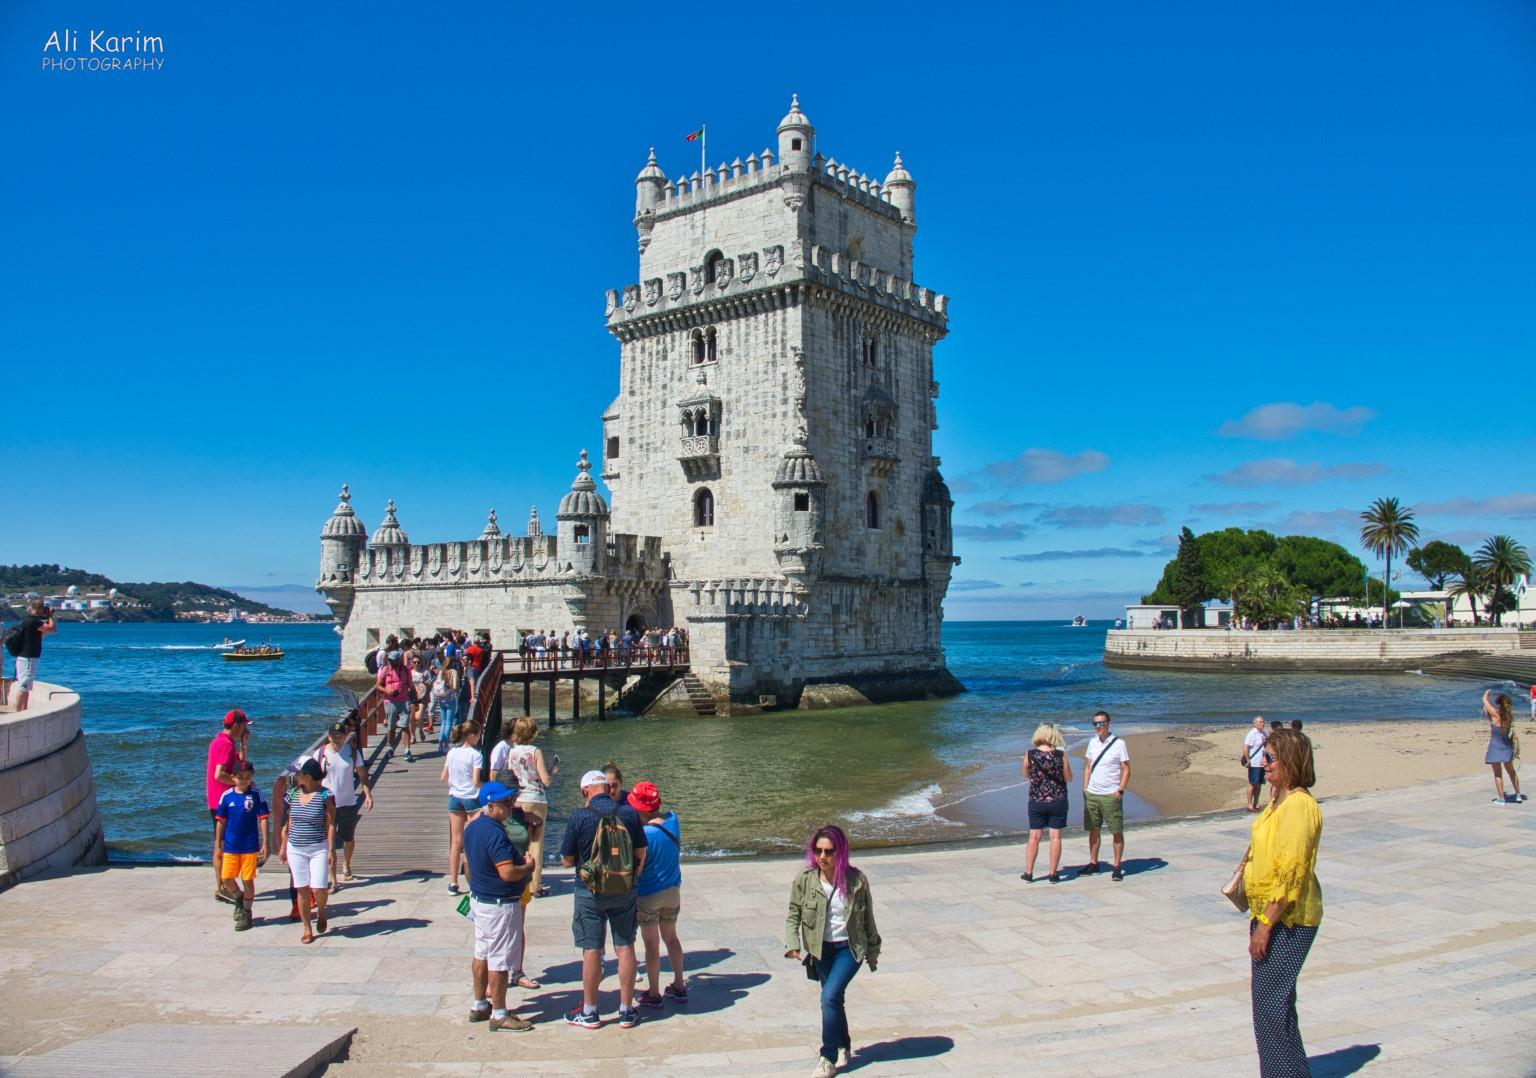 Lisbon Portugal: The Torre de Belem was a fort and early warning network for Portugal. It is inspired by North African designs, and comprises Moorish watchtowers and decorative architecture.